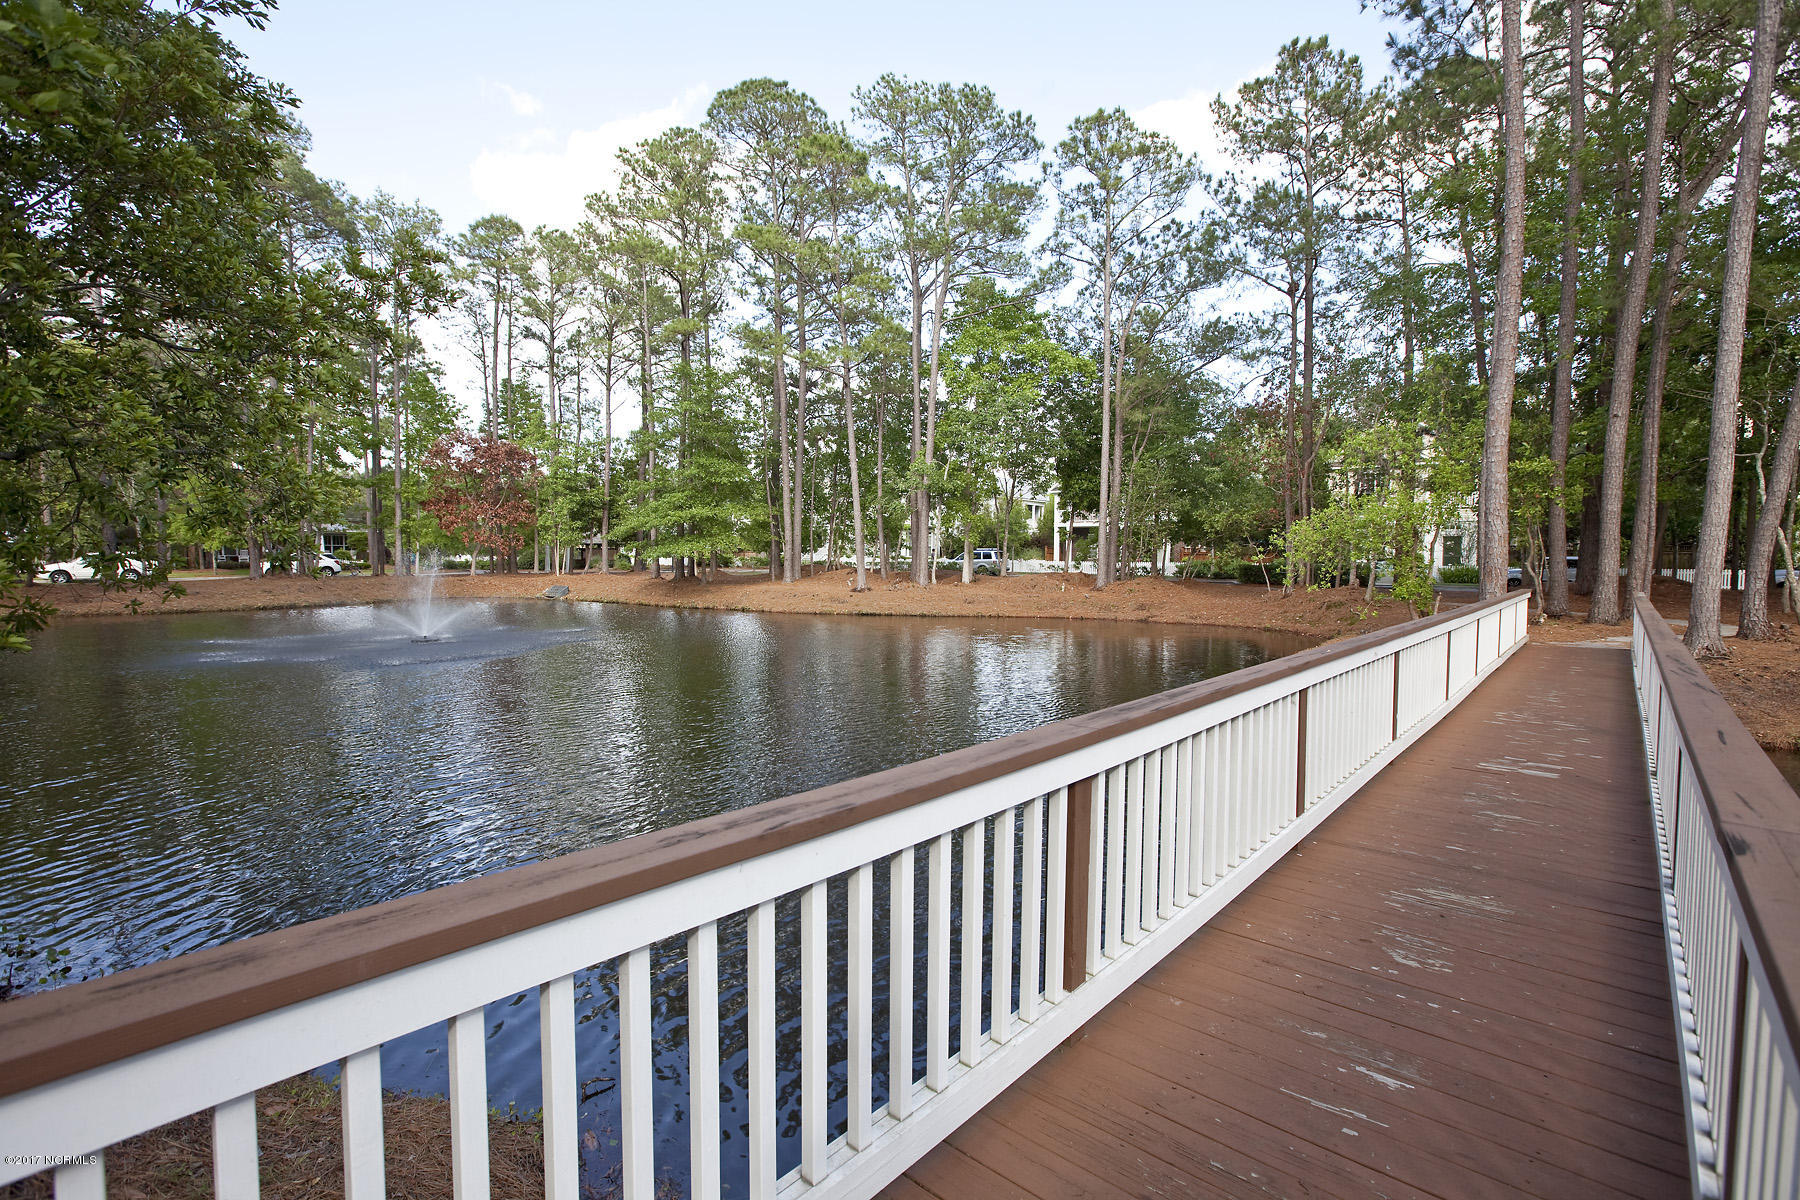 379 Whisper Park Court, Wilmington, North Carolina 28411, 4 Bedrooms Bedrooms, 11 Rooms Rooms,4 BathroomsBathrooms,Residential,For Sale,Whisper Park,100061611